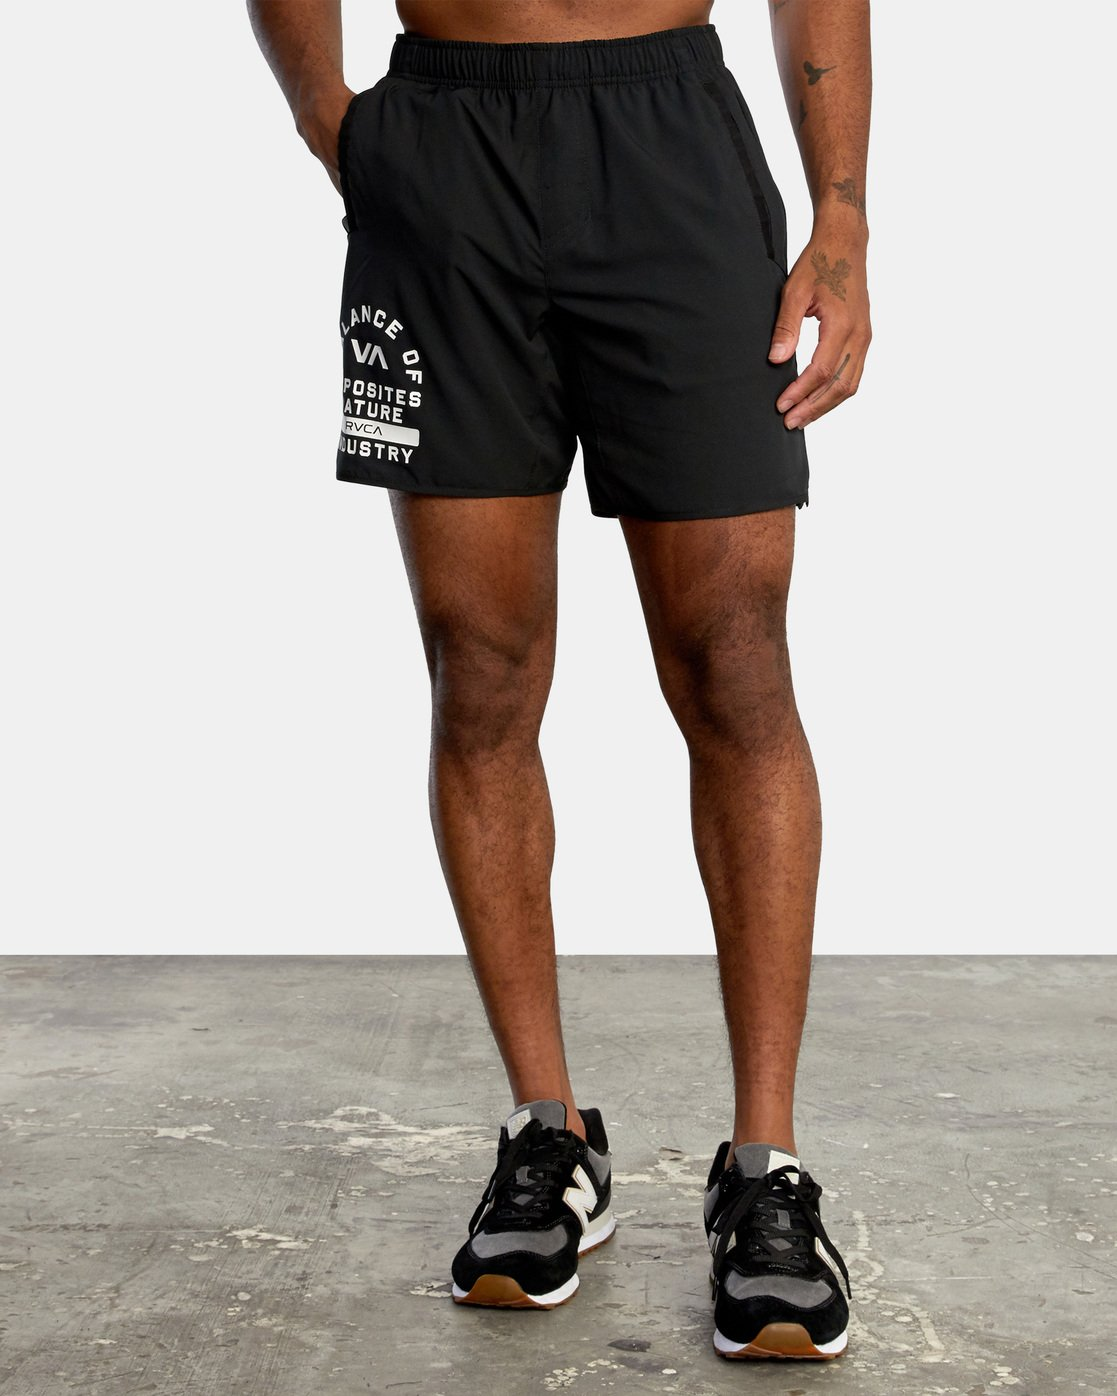 0 VA Sport Yogger - Recycled Performance Training Shorts for Men Black X4WKMARVS1 RVCA